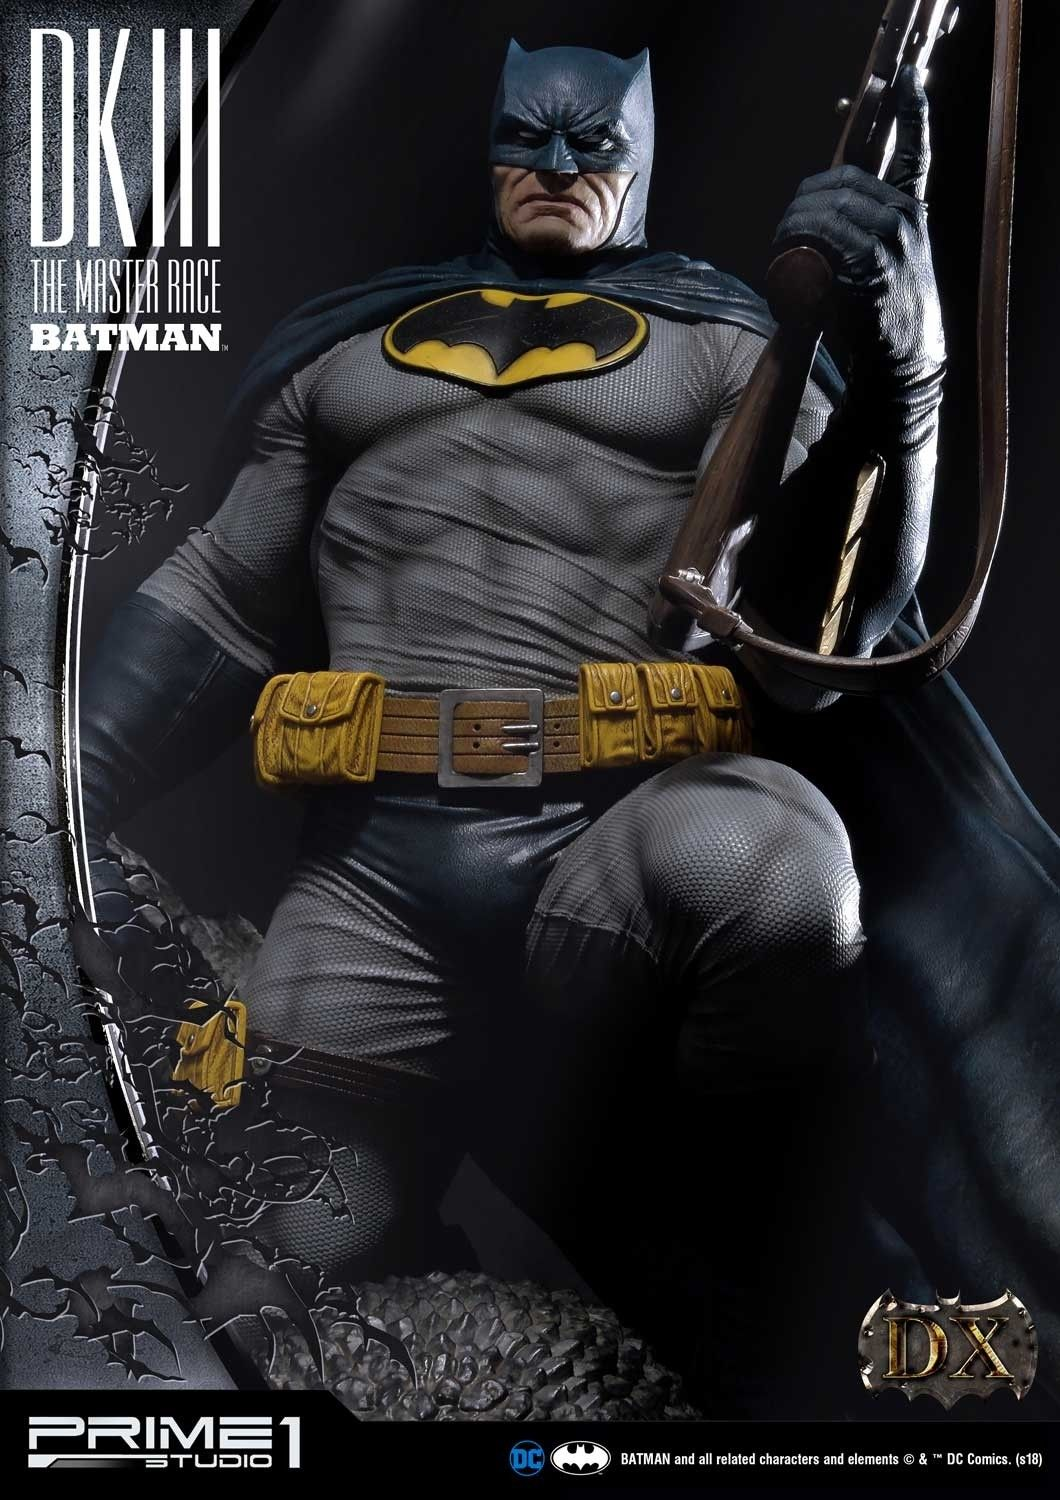 The Dark Knight Iii The Master Race Batman Statue With Images